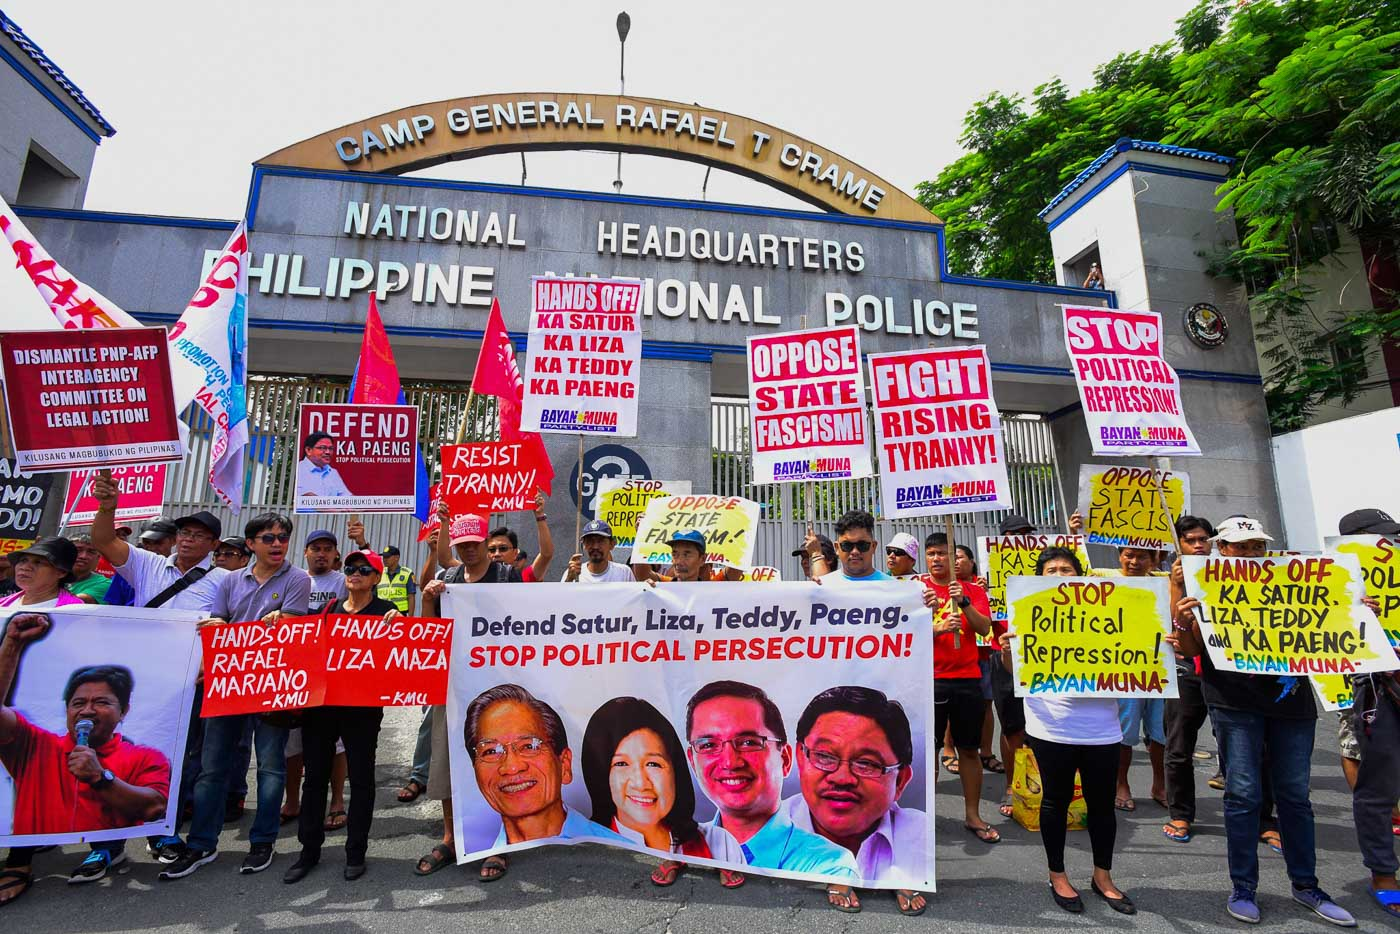 RESISTANCE. Militant groups protest at Camp Crame on July 30, 2018. Photos by Maria Tan/Rappler